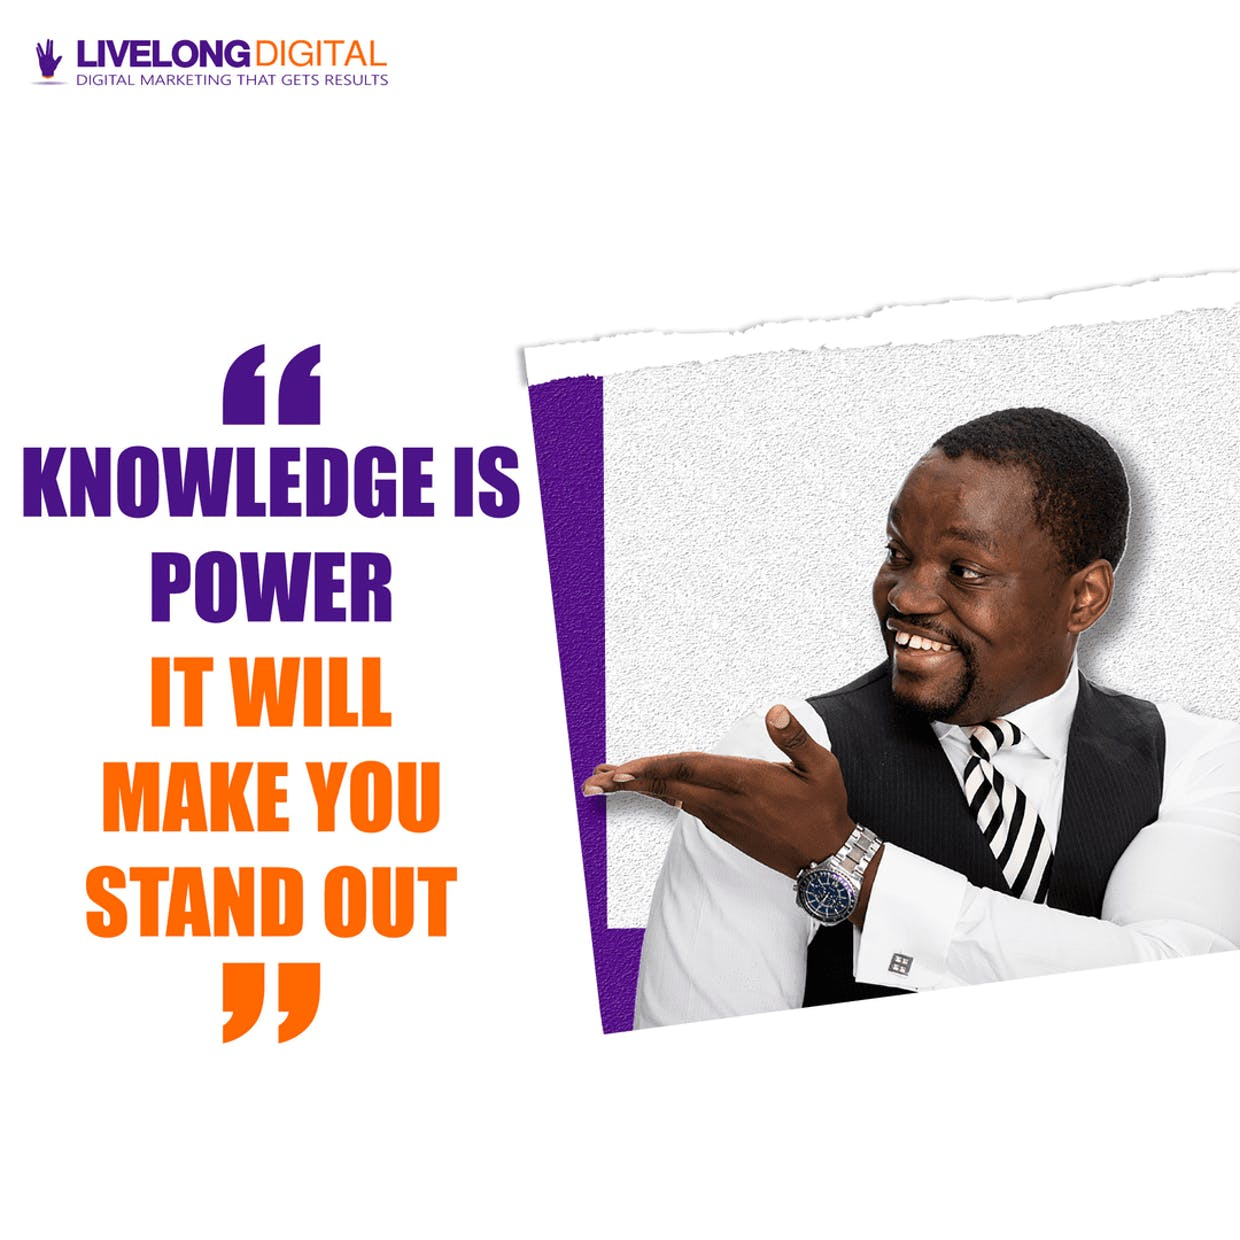 Tip: Start slow and build up your knowledge base.